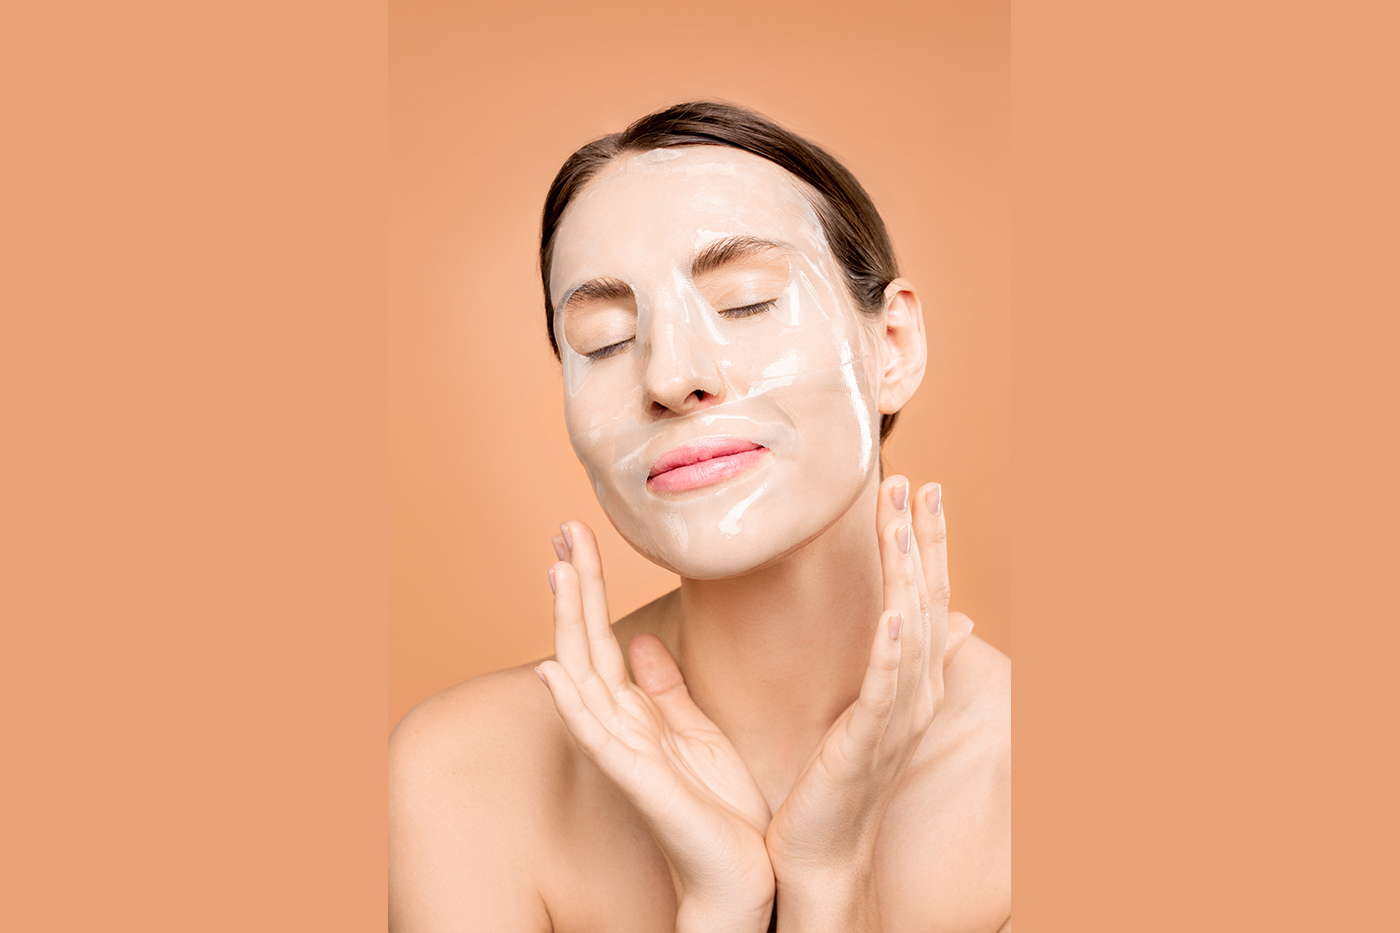 Facial sheet masks usage soars in Asia